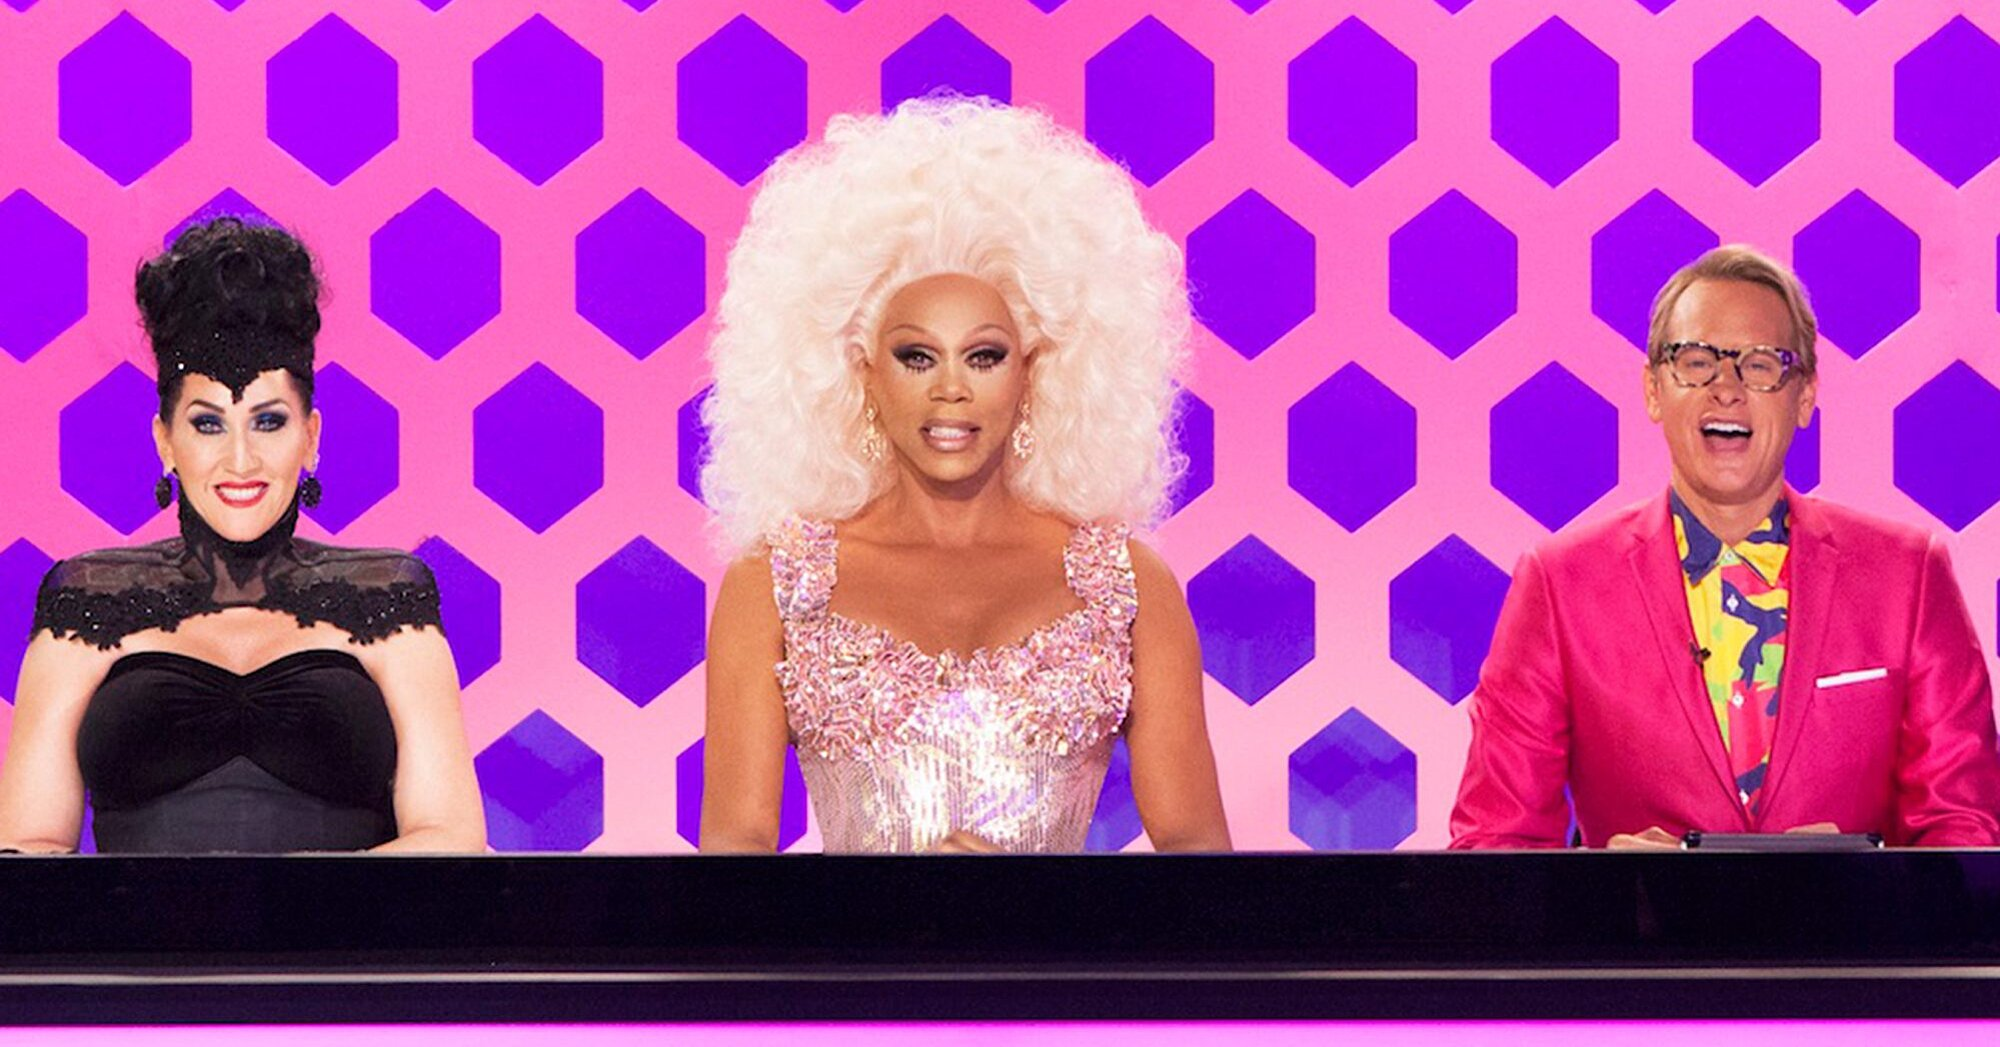 Rupaul's offensive comments are part of drag's bigger problem